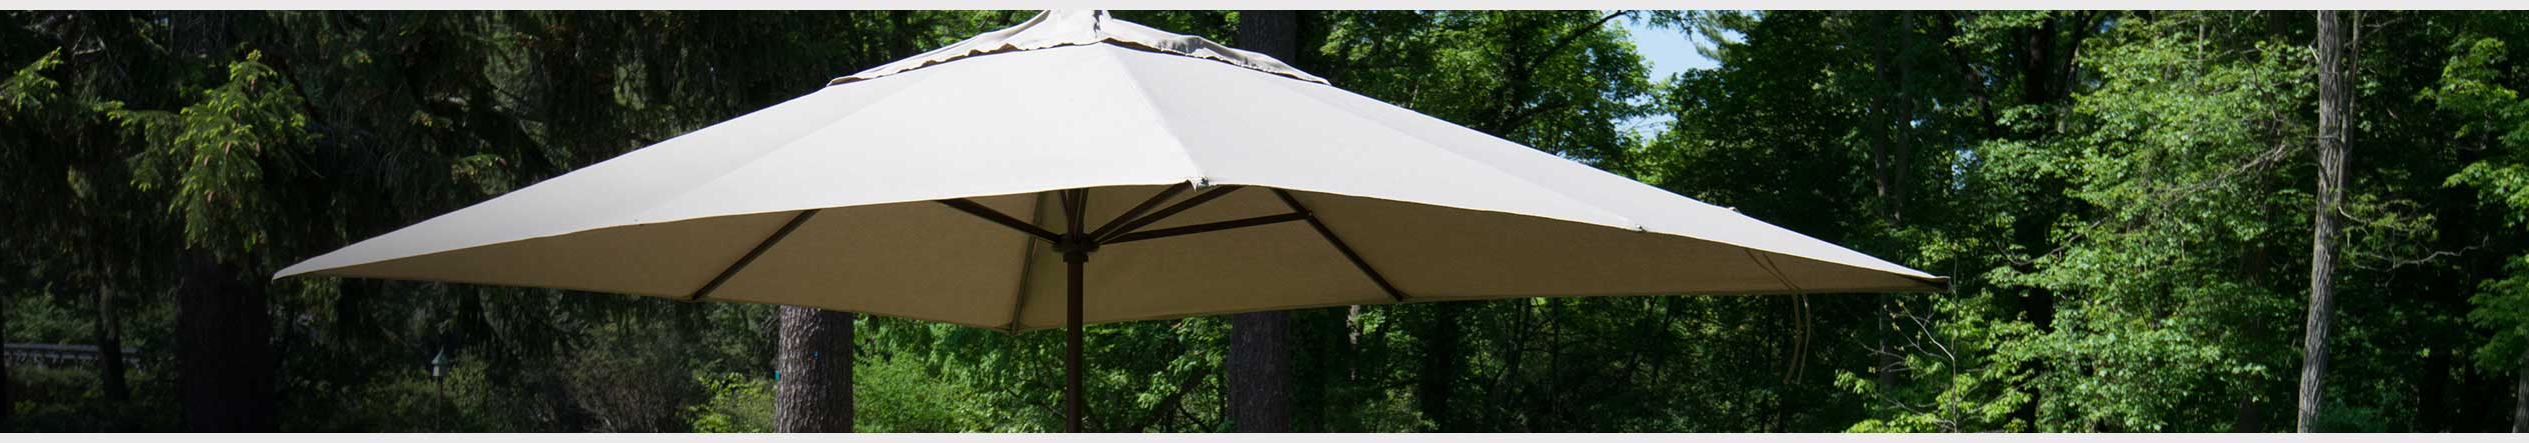 Current Outdoor And Patio Umbrellas At Jordan's Furniture In Ct, Ma, Nh And Ri Throughout New Haven Market Umbrellas (View 4 of 20)